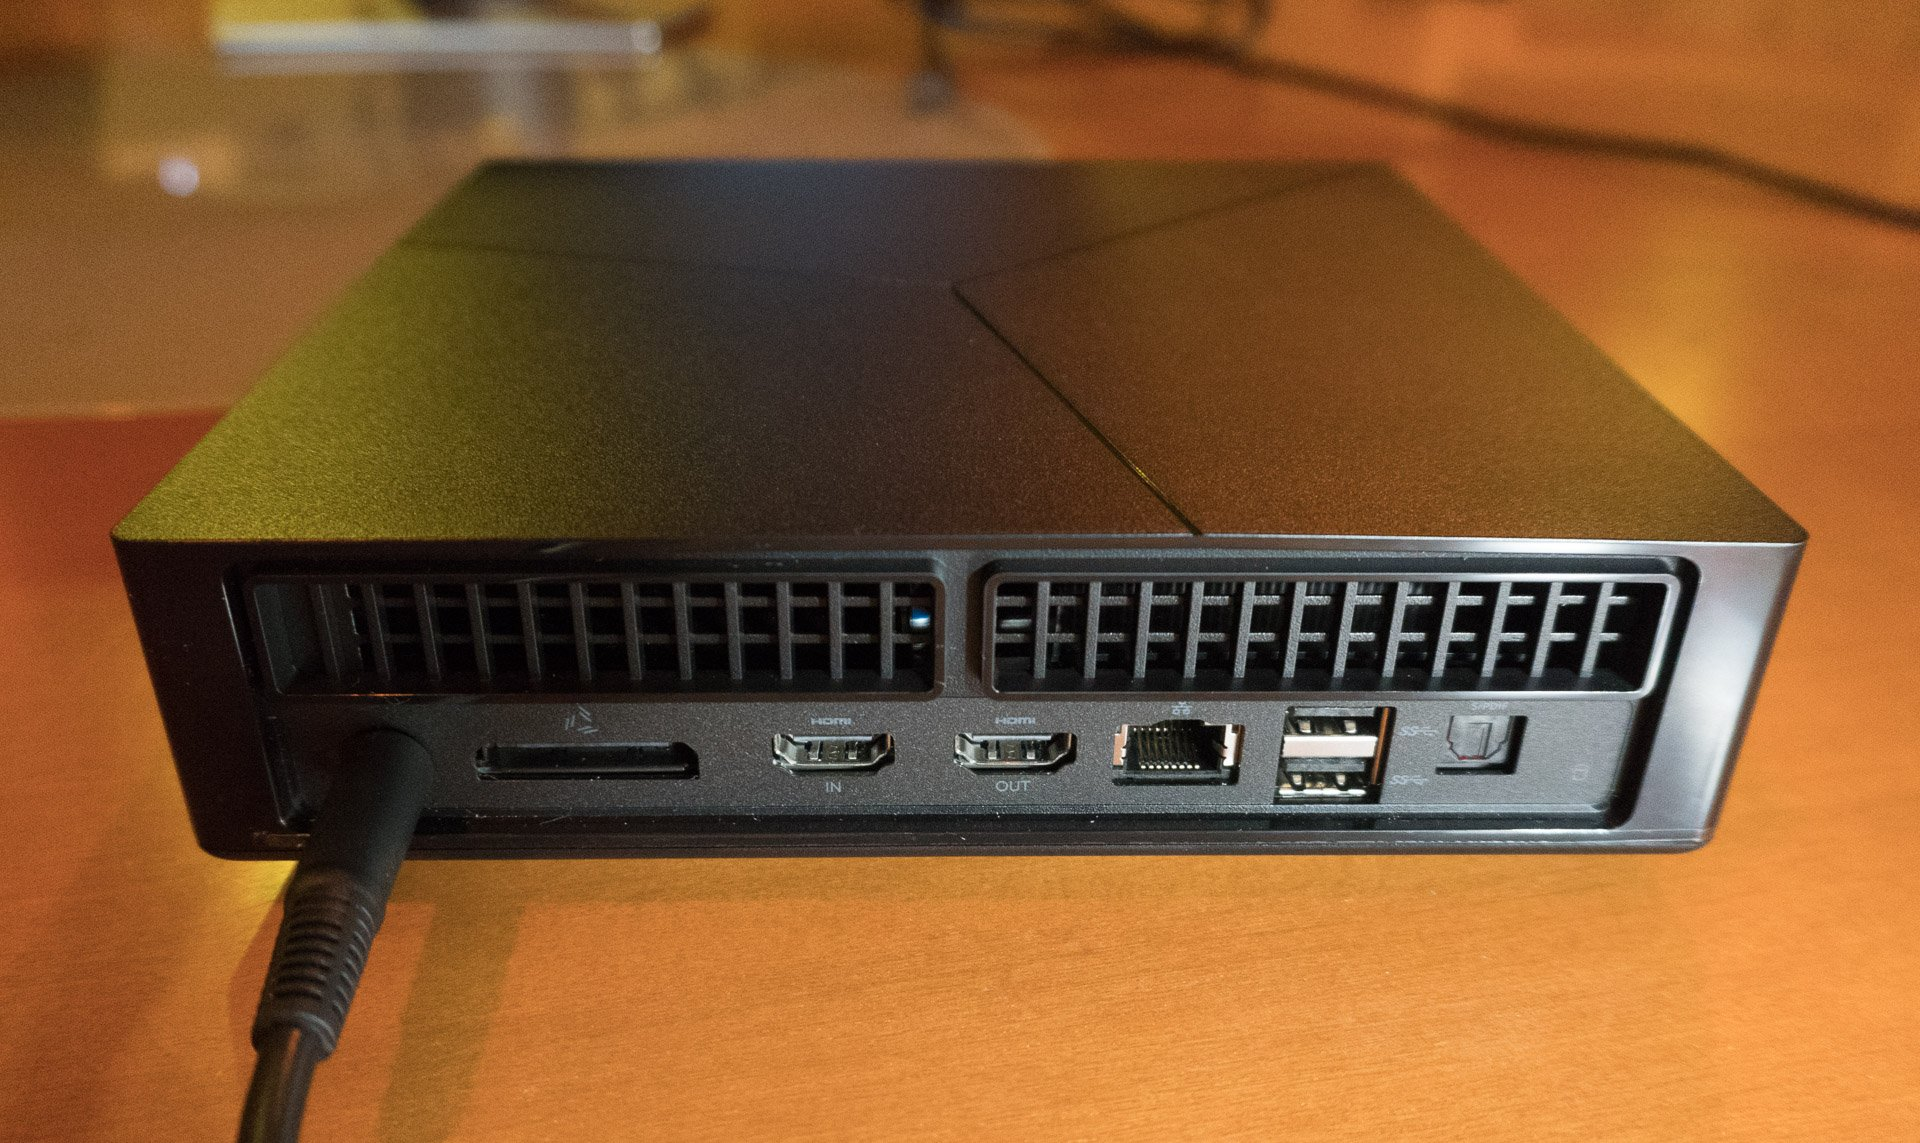 Alienware Graphics Amplifier Review >> Hands-on Review: Alienware Alpha R2 Compact Gaming PC - Technabob